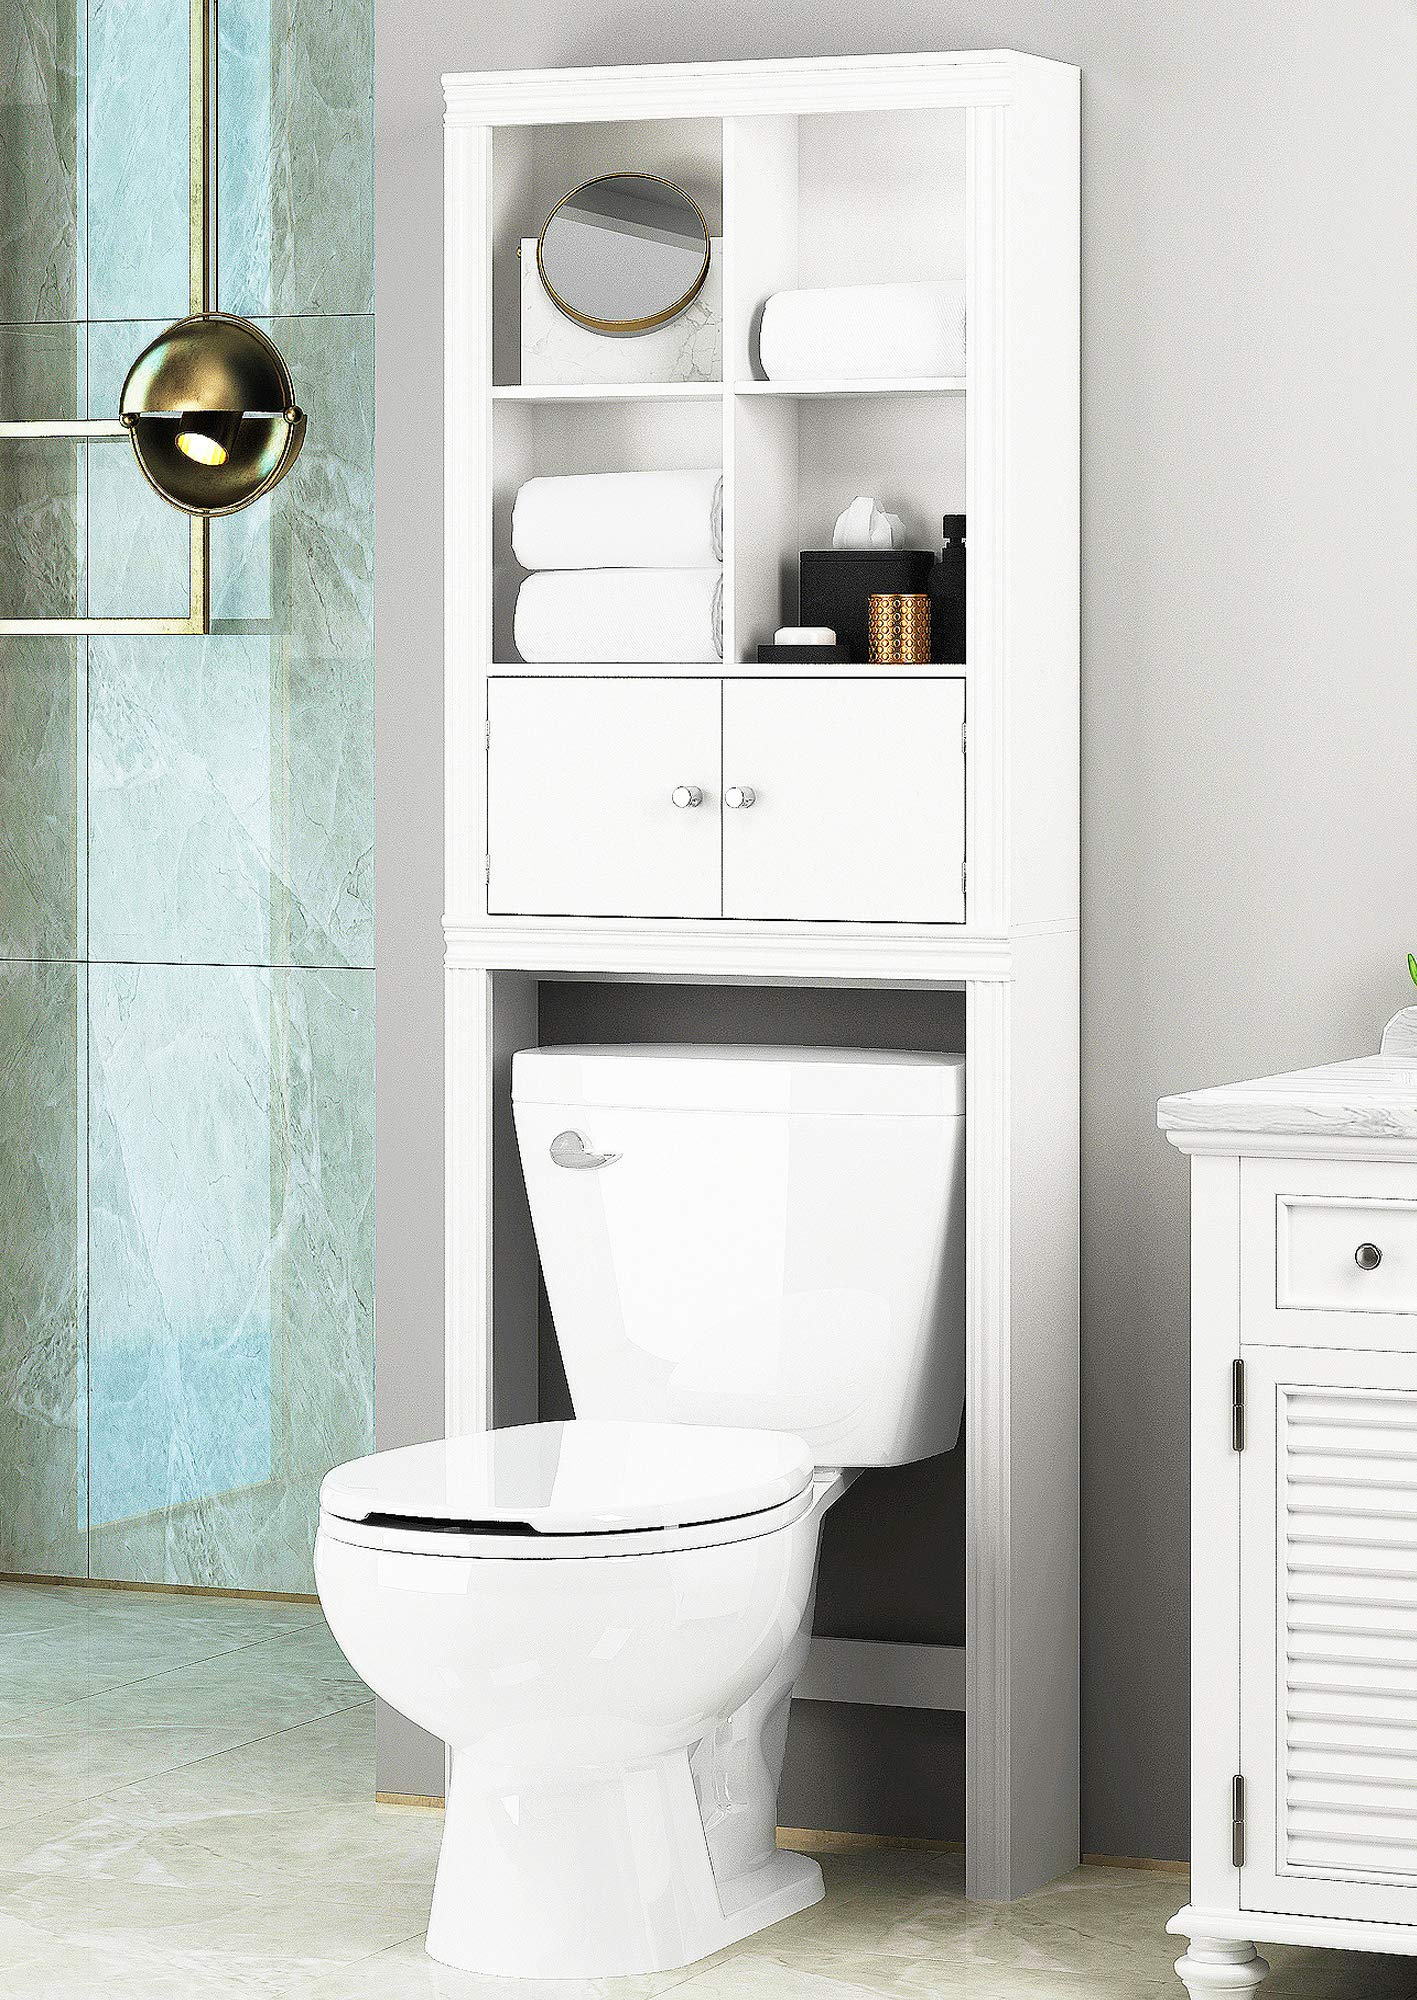 Spirich Home Bathroom Shelf Over The Toilet, Bathroom Cabinet Organizer Over Toilet, Space Saver Cabinet Storage, White Finish